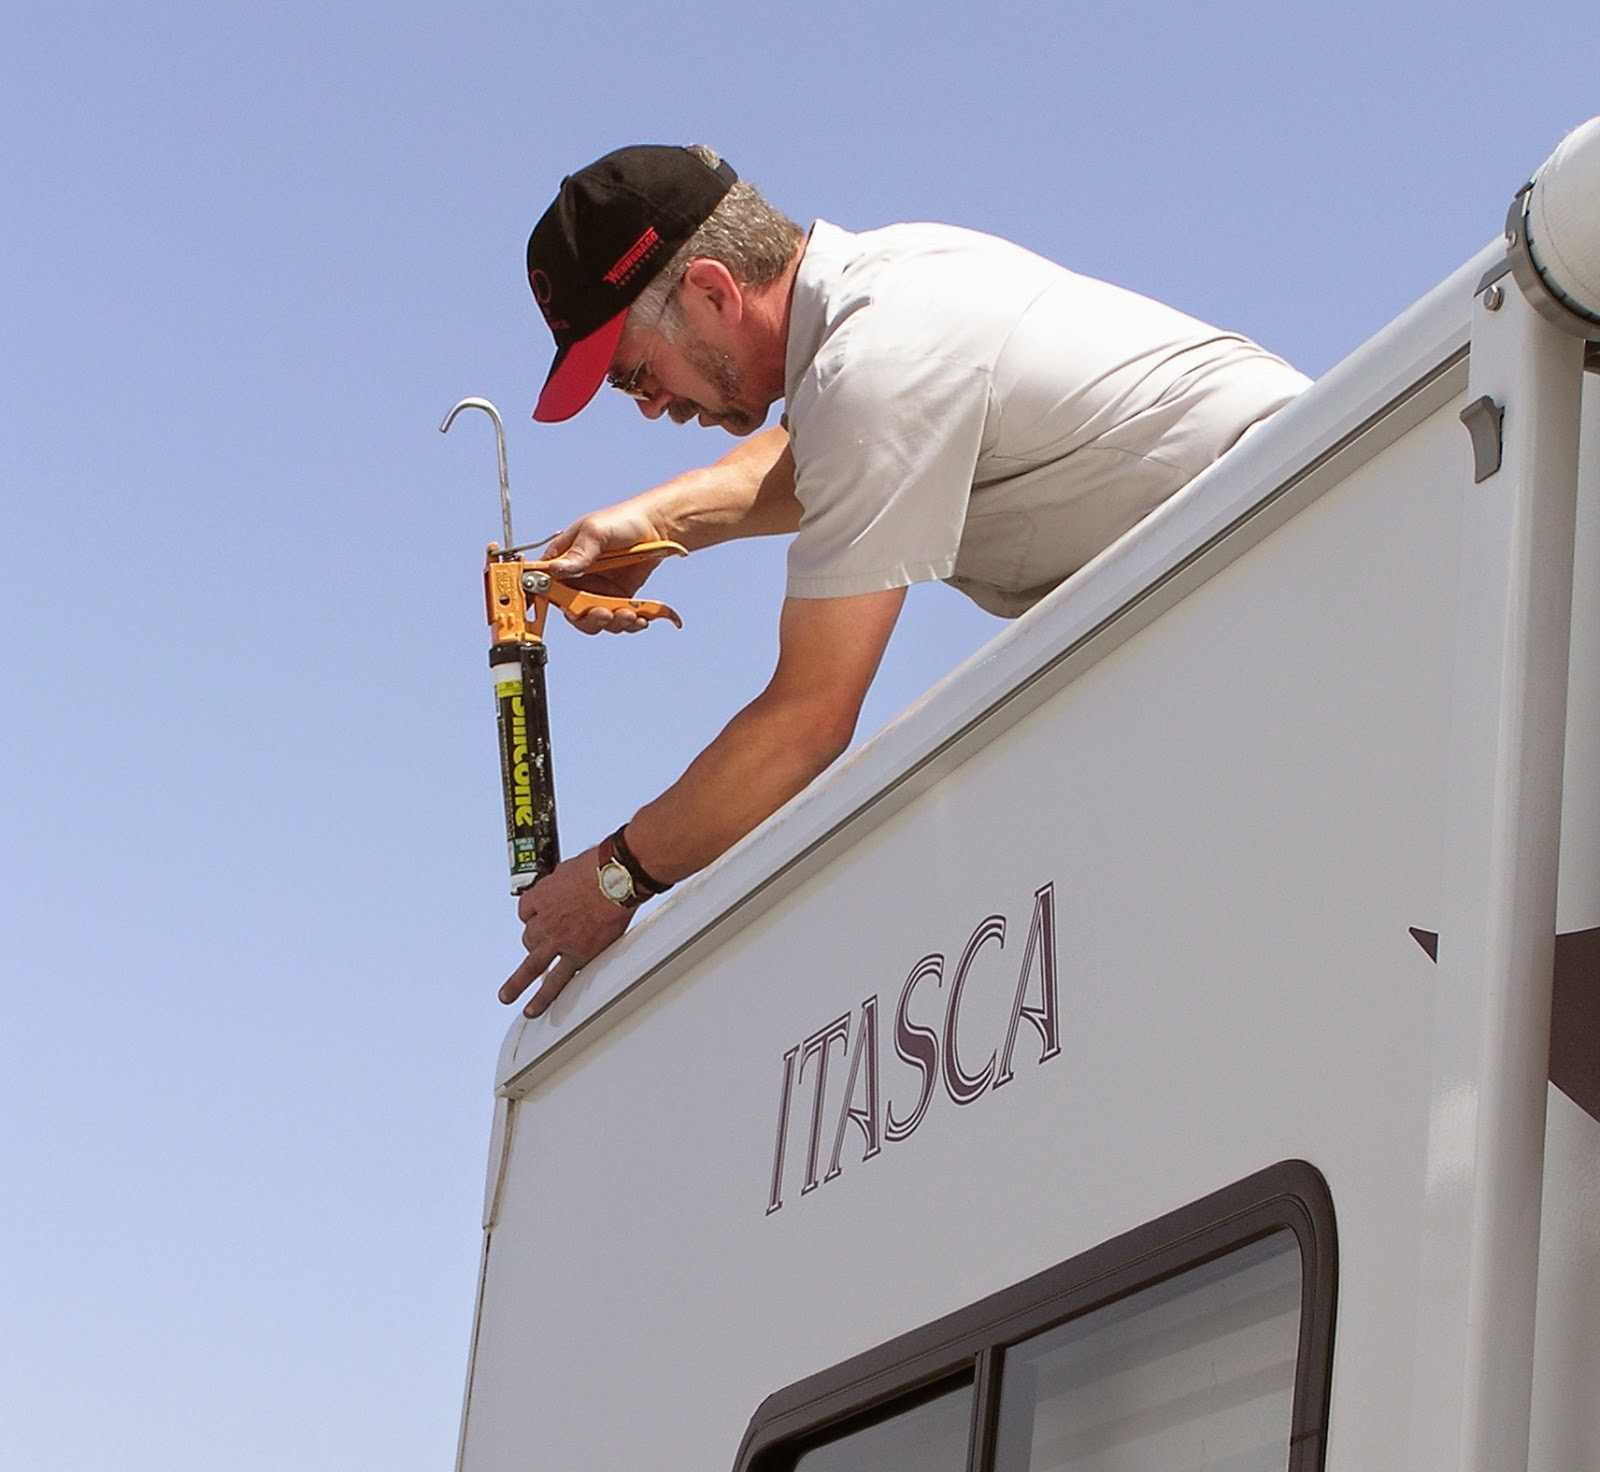 la mesa rv is hiring techs experience life la mesa rv was d as one of the top 50 rv dealers by rv business for 2014